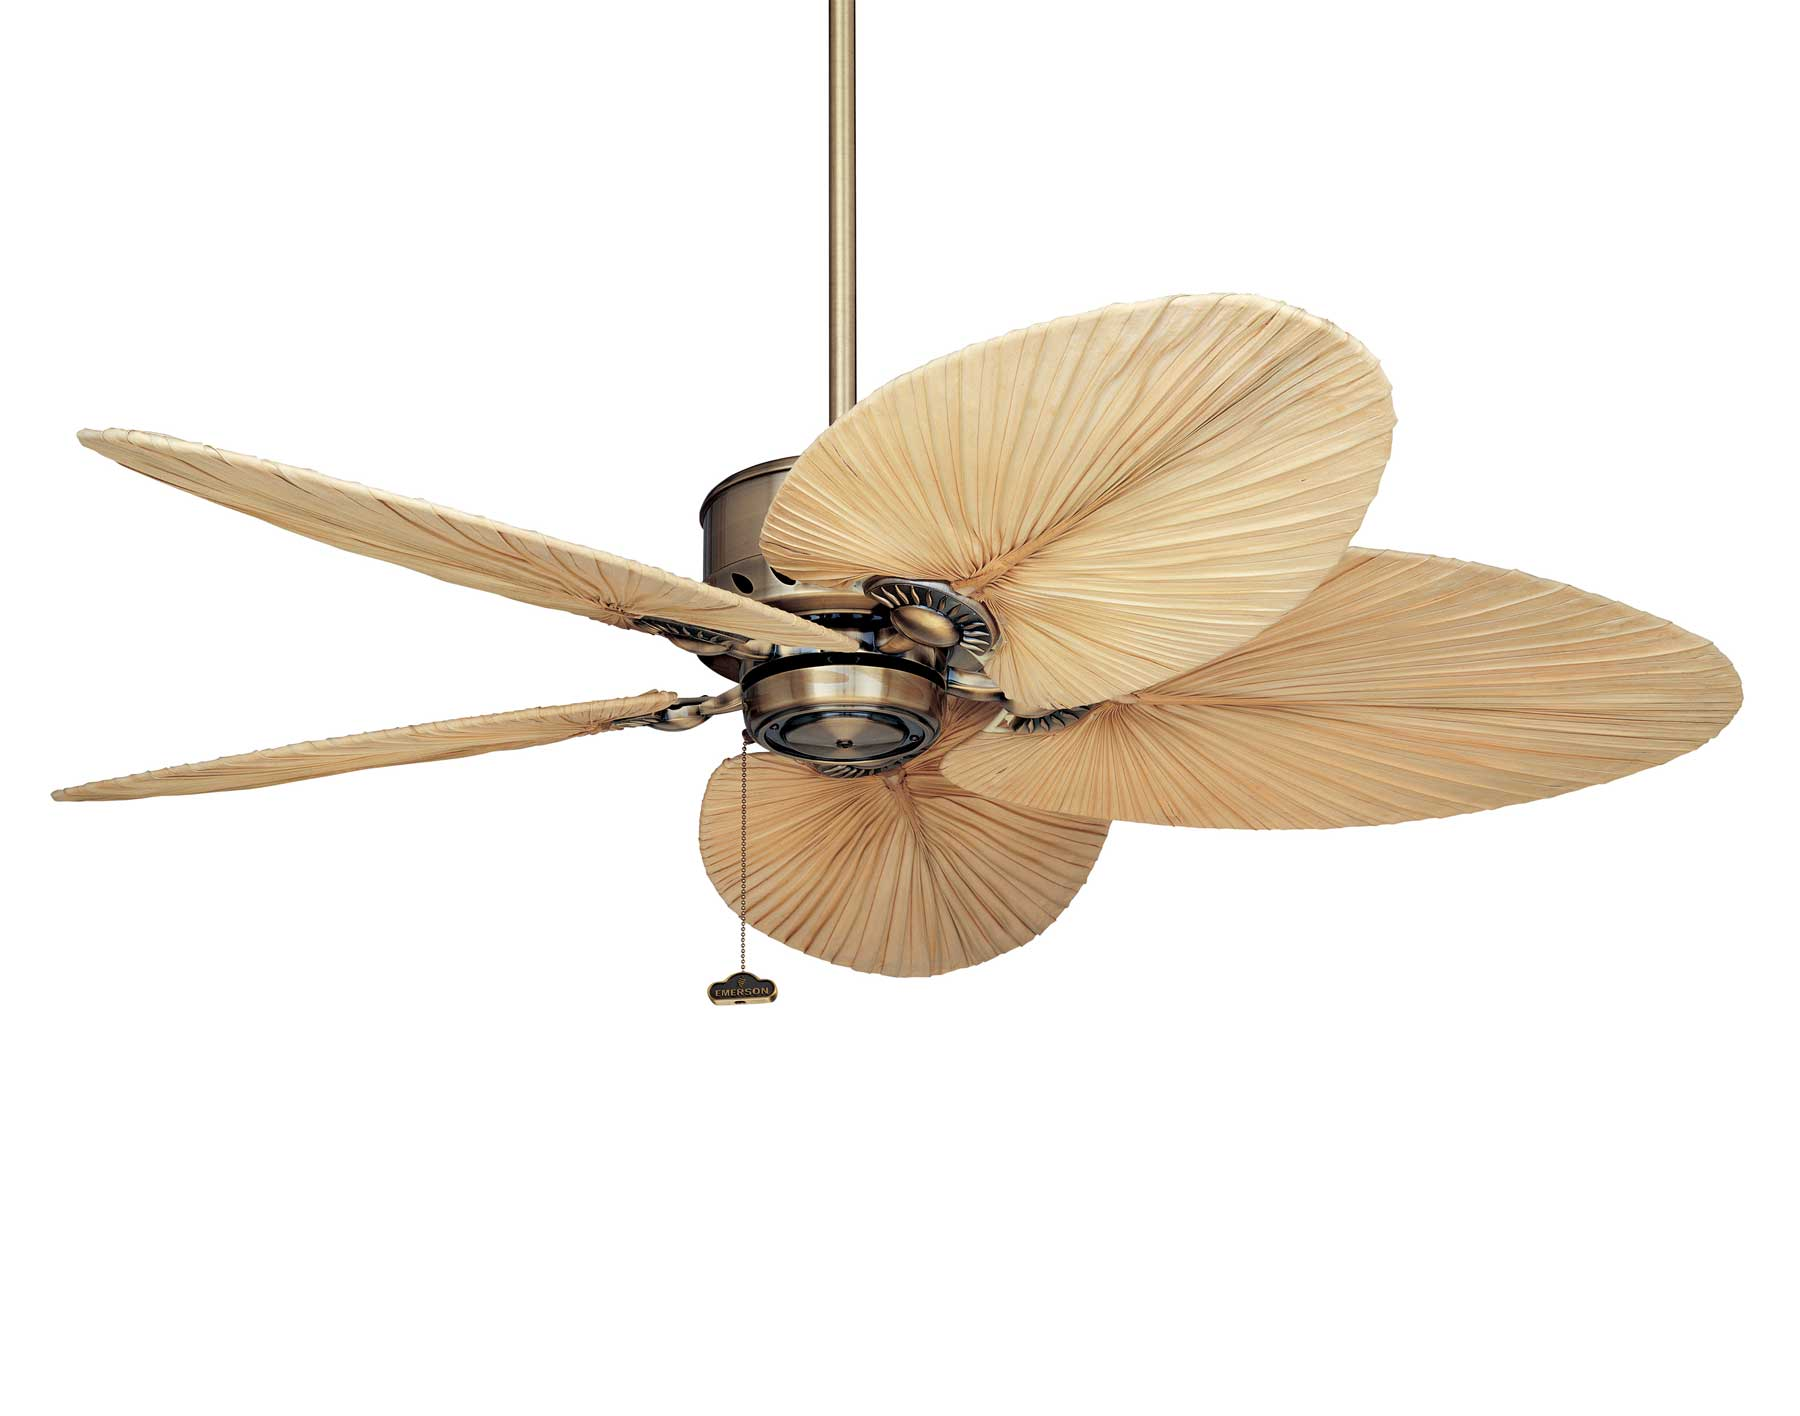 Tropical Style Ceiling Fans Best Home Design 2018